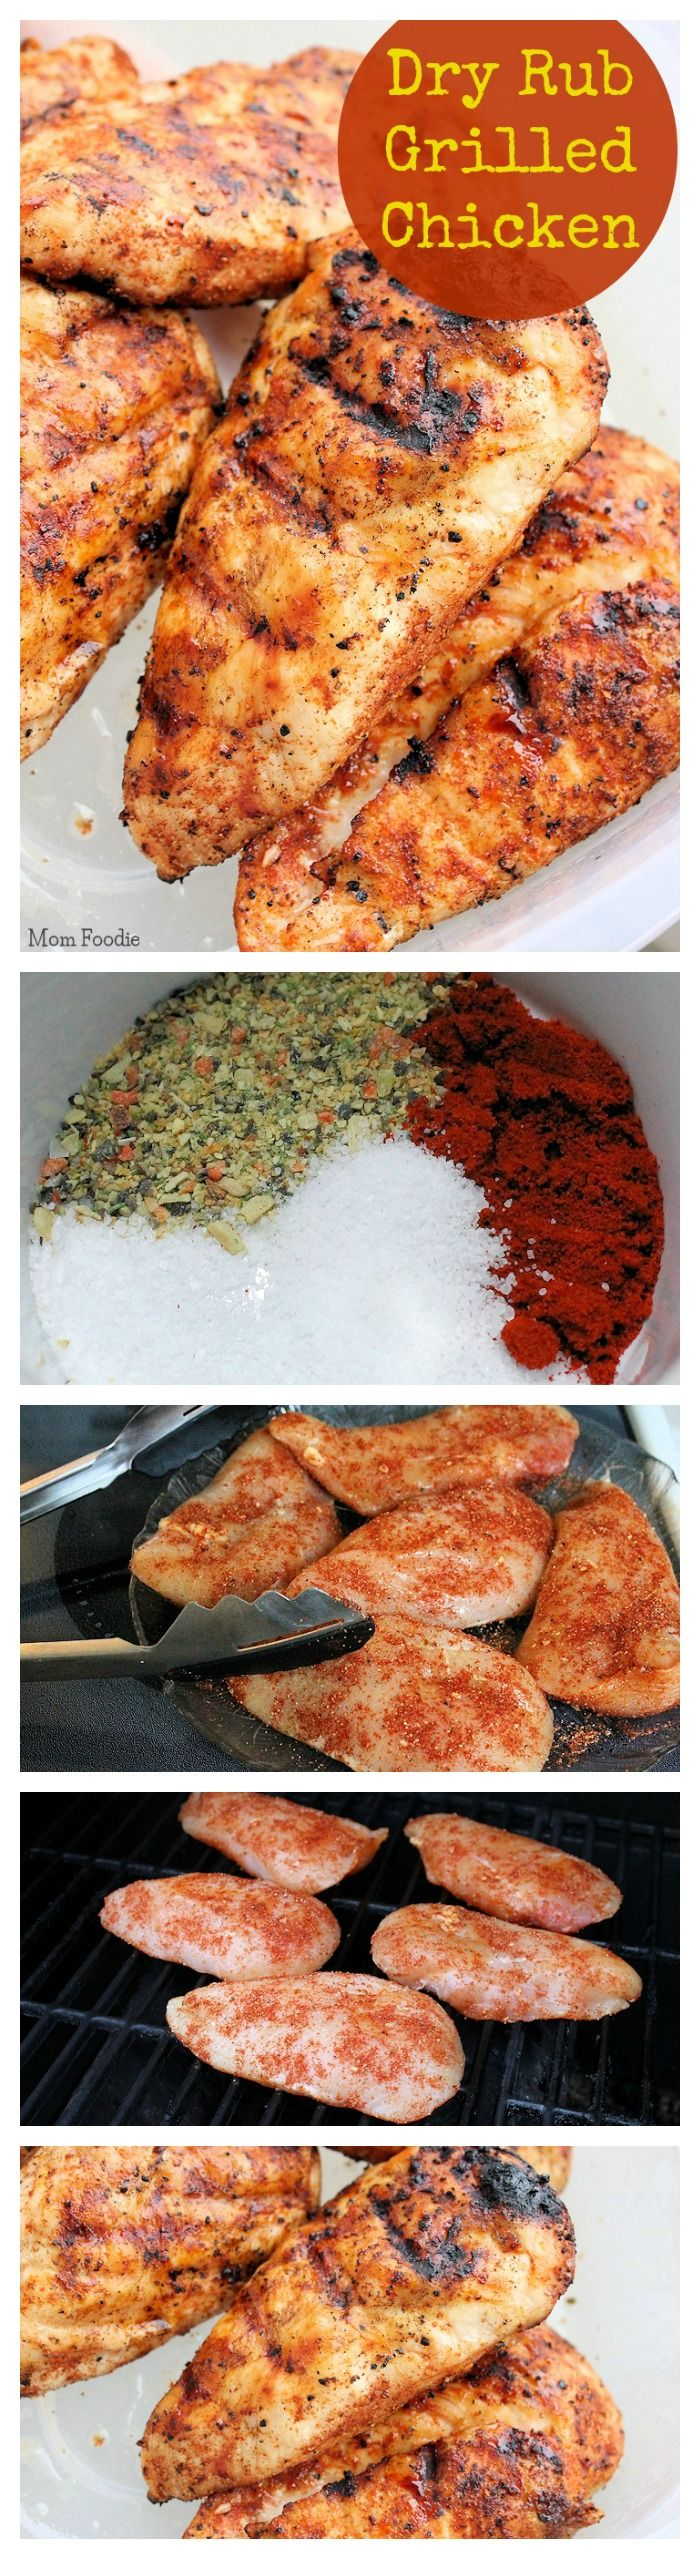 Dry Rub Chicken